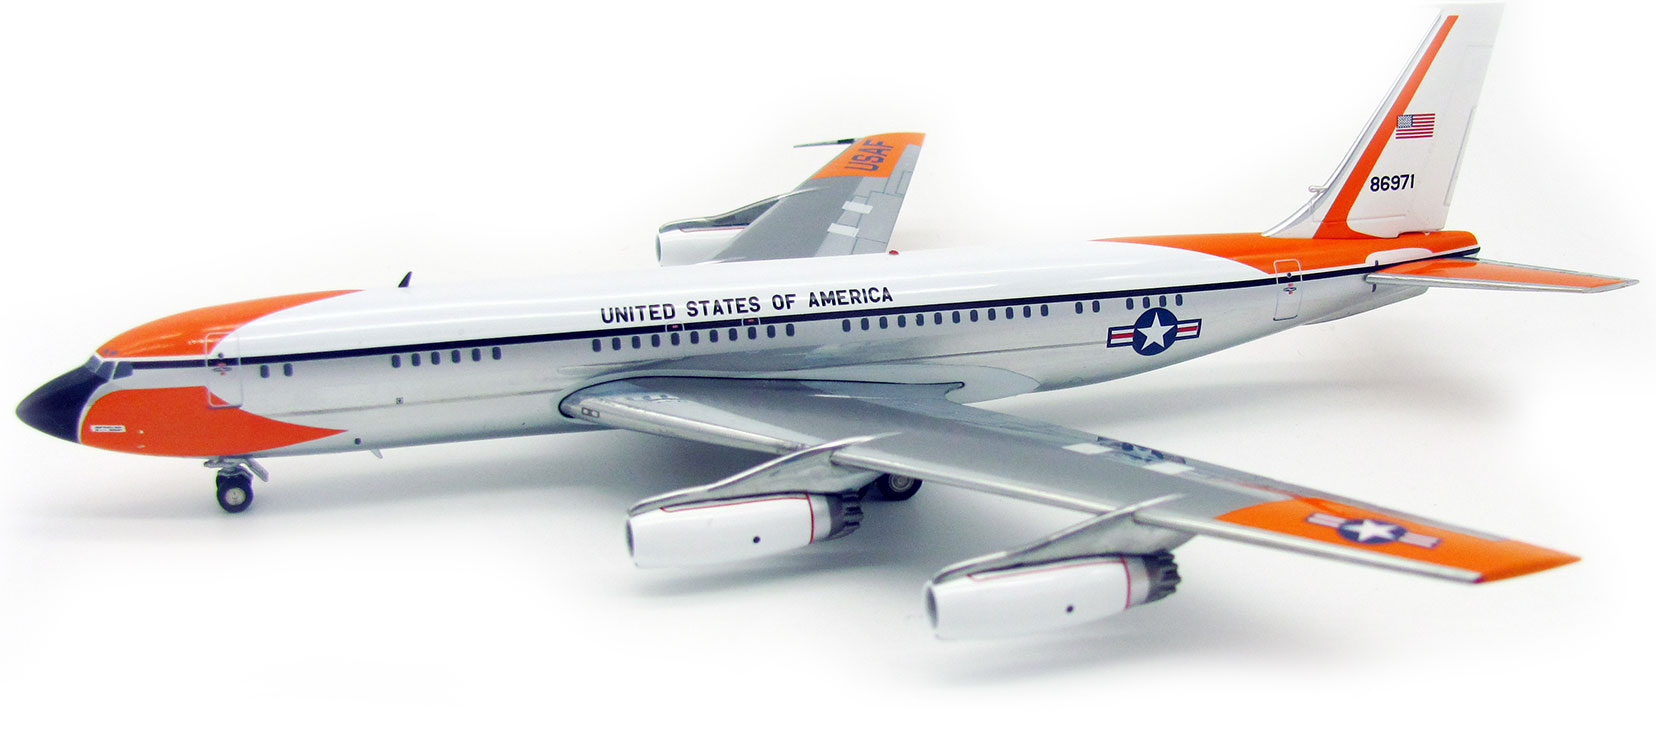 buy online 790b4 5bea6 2007 was an historic year for Boeing with the 40th Anniversary of the first  flight of the ever popular 737-200 which first took to the skies back in 1967  on ...